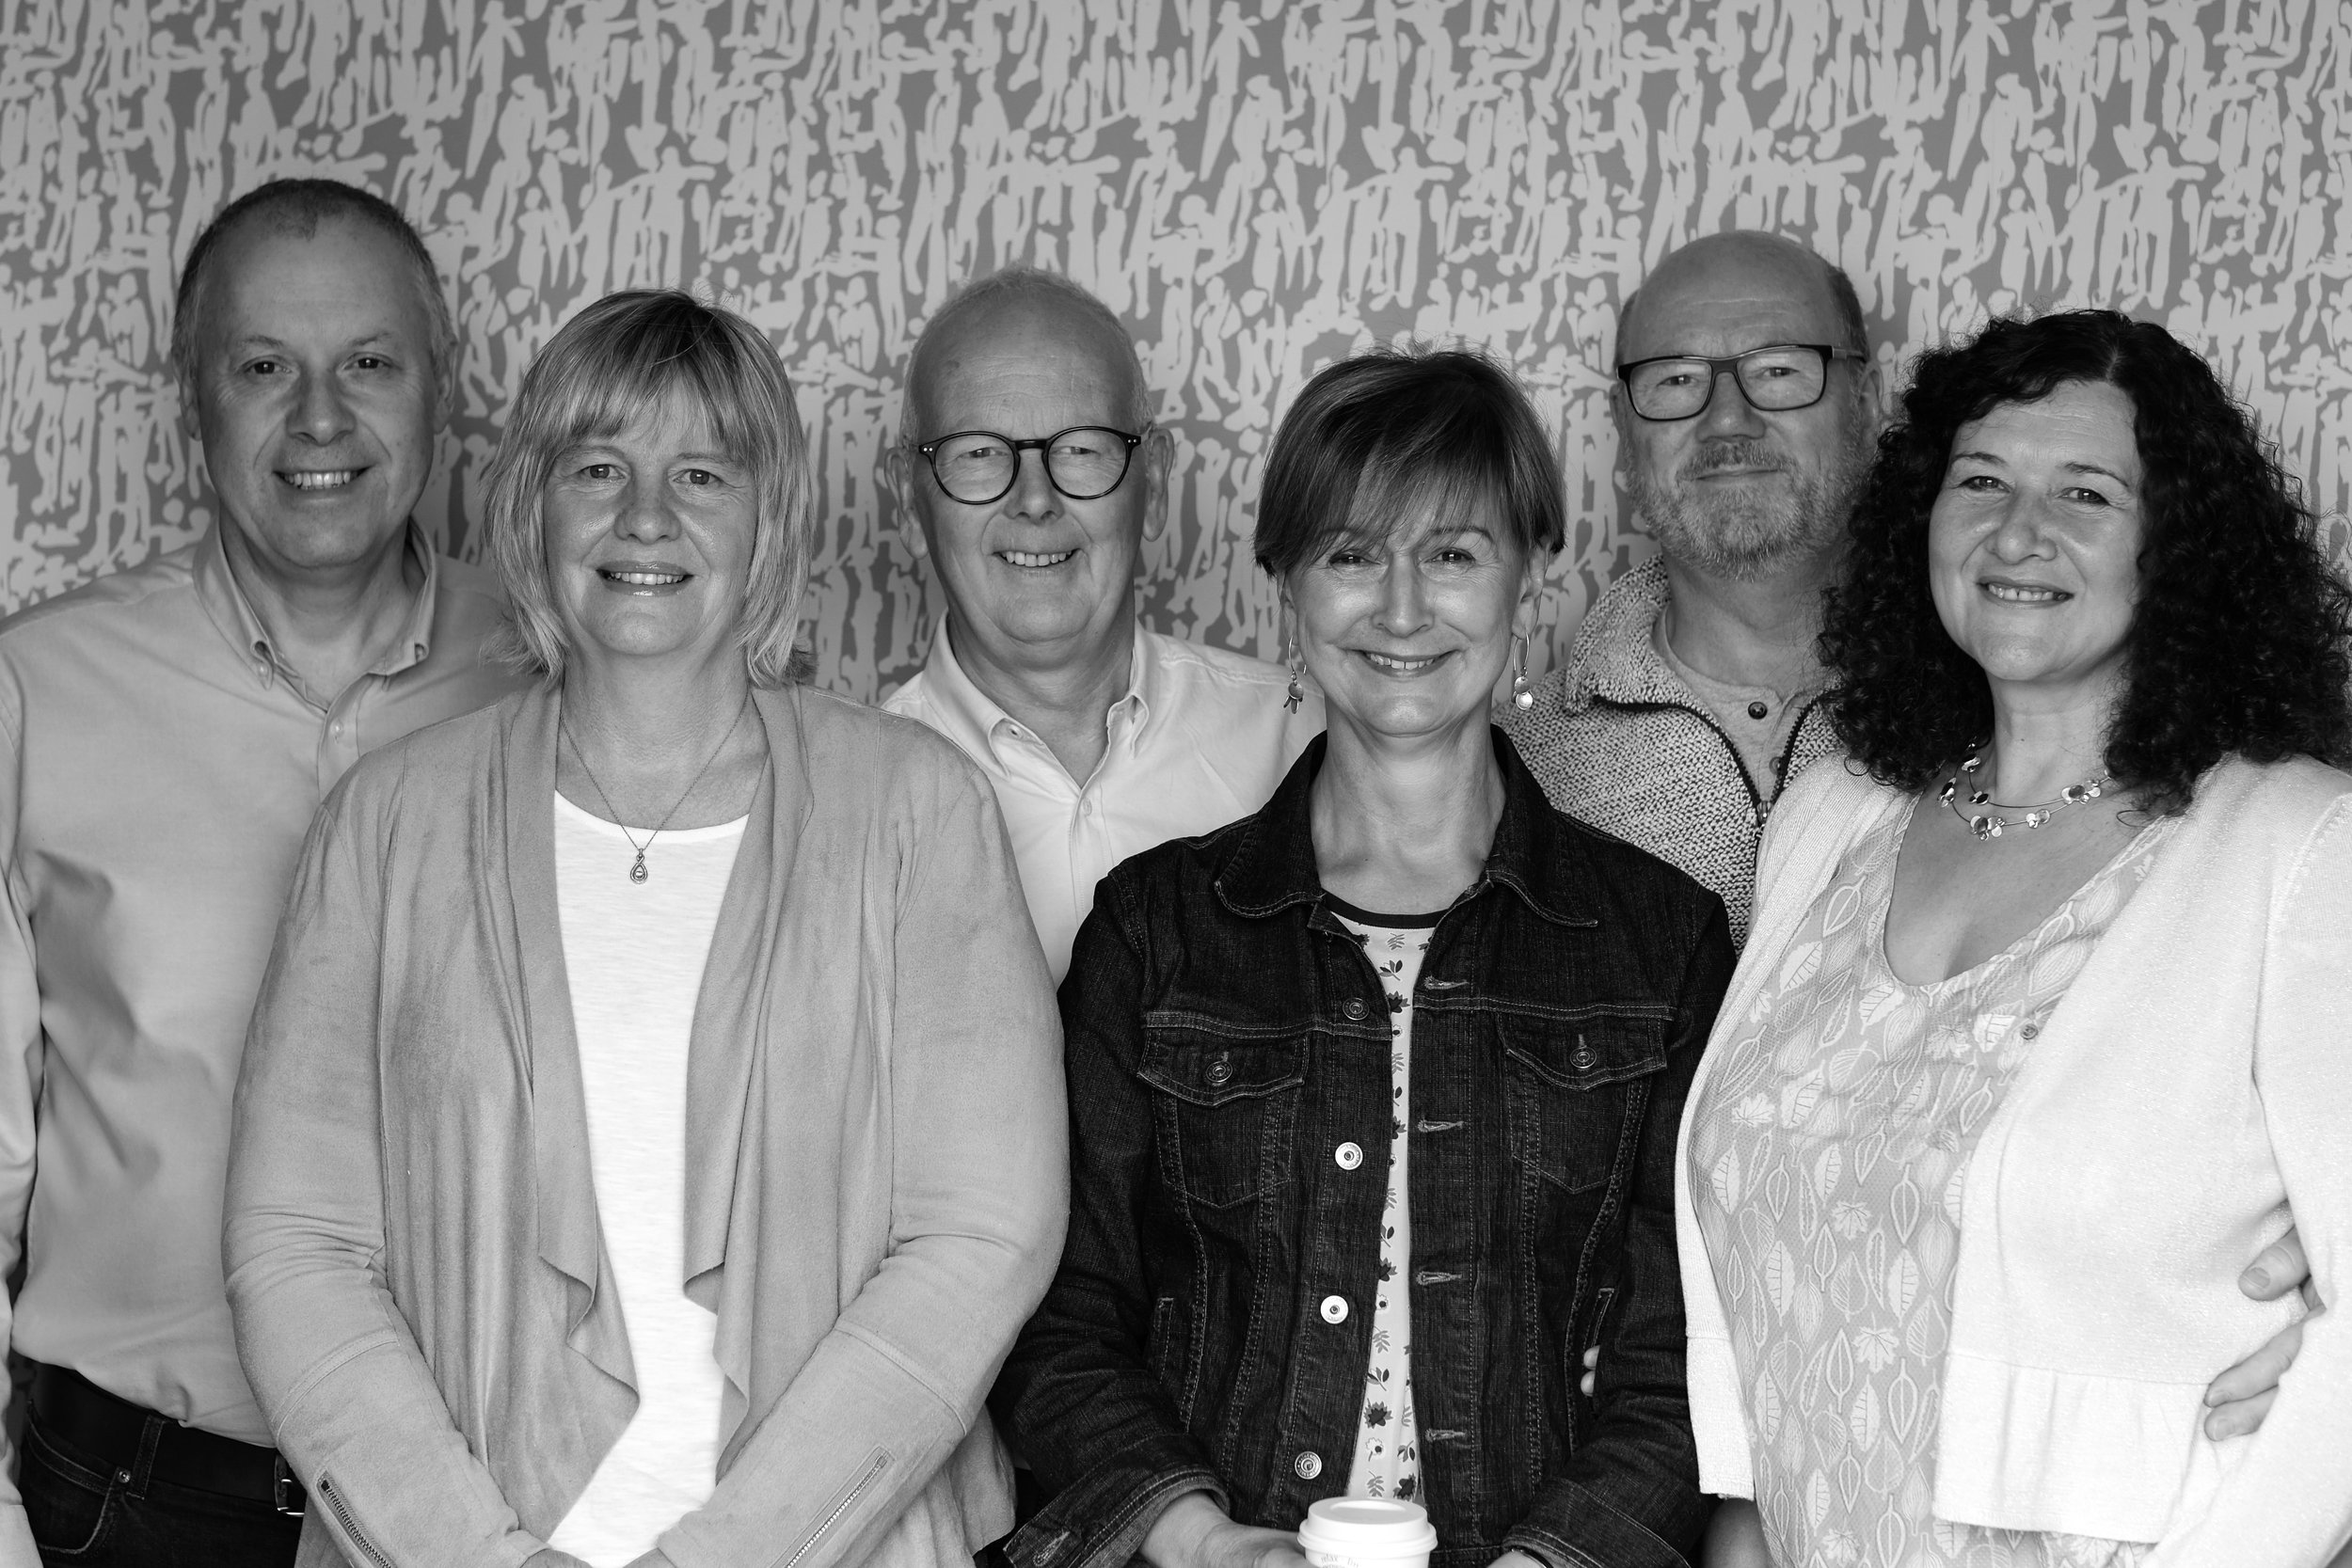 Dunadry  56A Ballybentragh Road, Dunadry, Antrim, BT41 2HJ  Meets on Monday evenings.  Leaders : Jonathan & Colleen Stirling, David & Bea Stirling, Tony & Angela Crone  For more information contact Colleen Stirling on 07732 538610